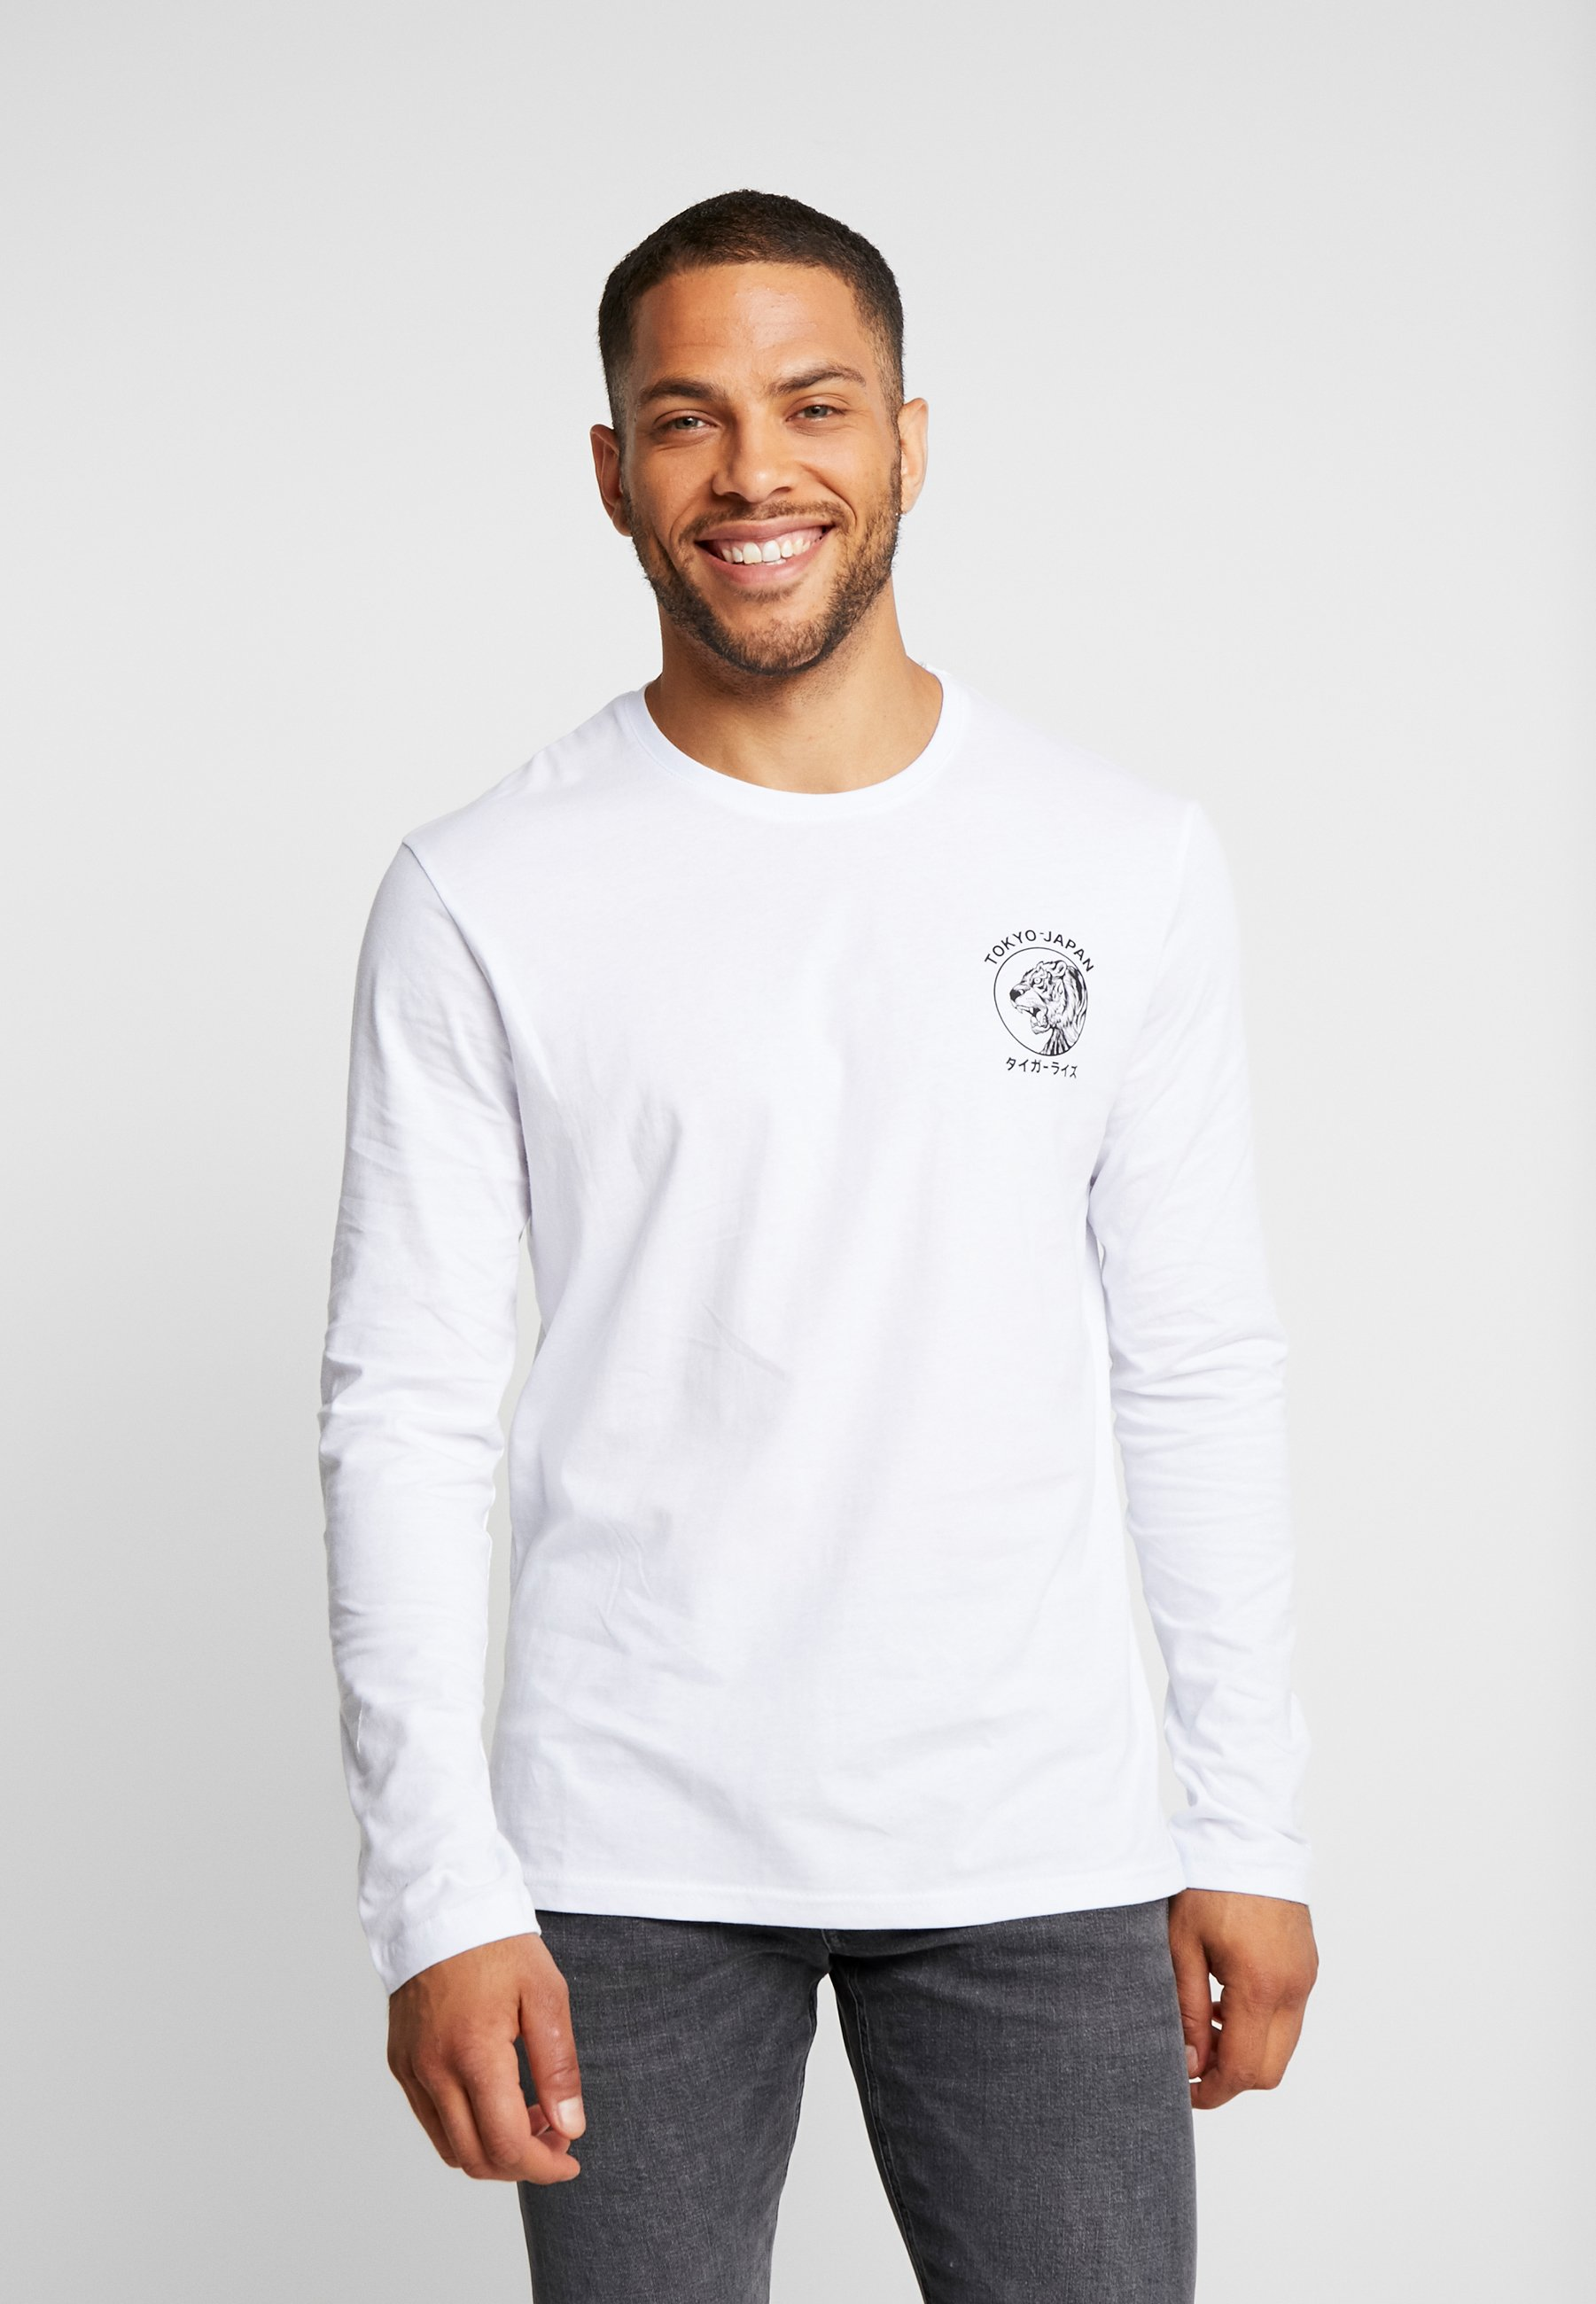 LonguesWhite shirt À Pier One T Manches f76gYby